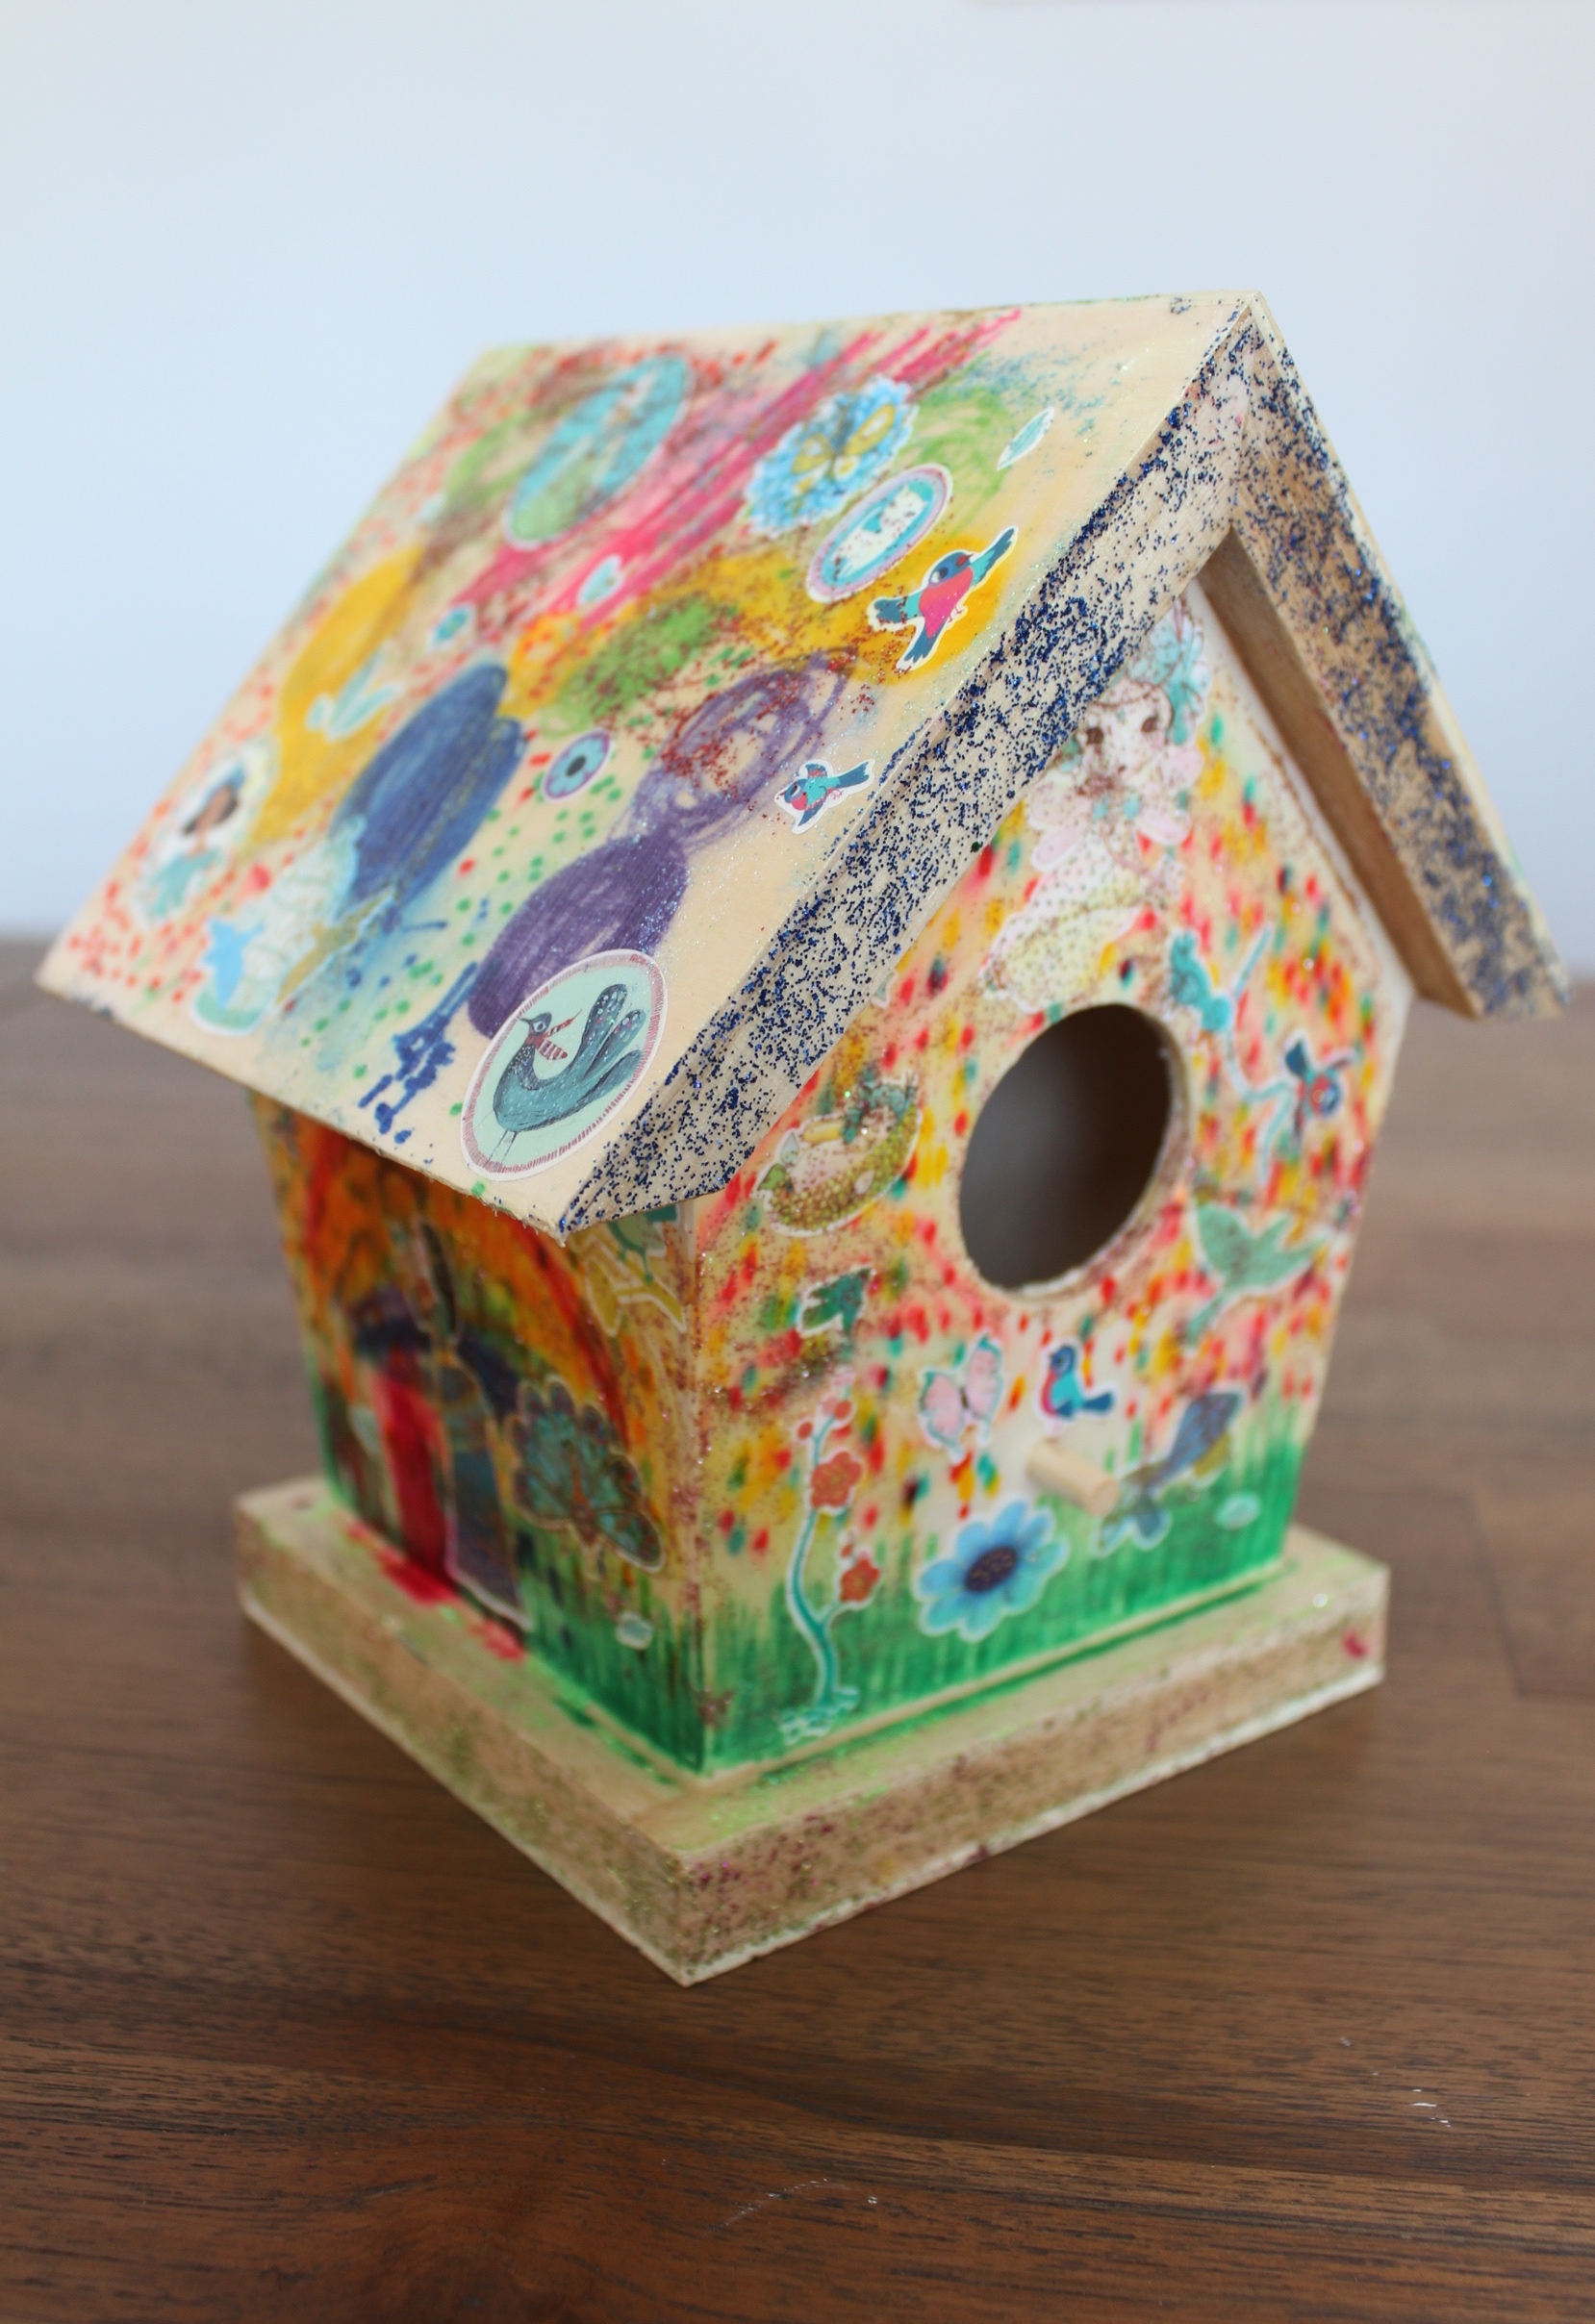 Birdhouse decorated by Danika and Mila